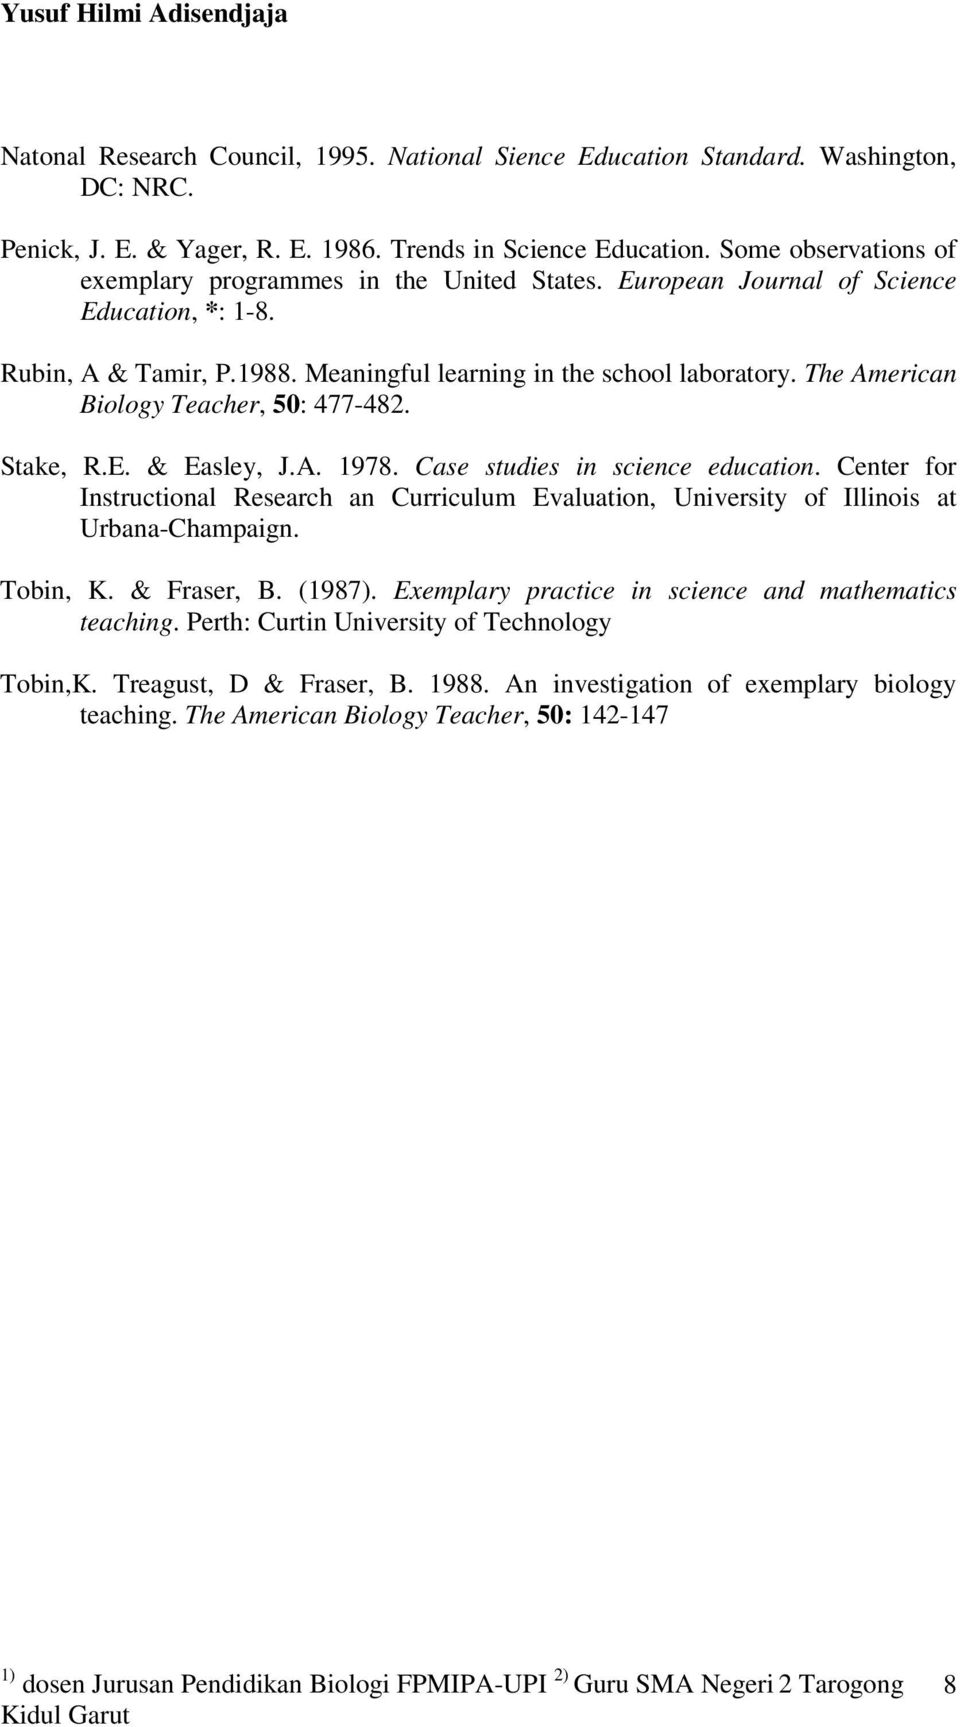 The American Biology Teacher, 50: 477-482. Stake, R.E. & Easley, J.A. 1978. Case studies in science education.